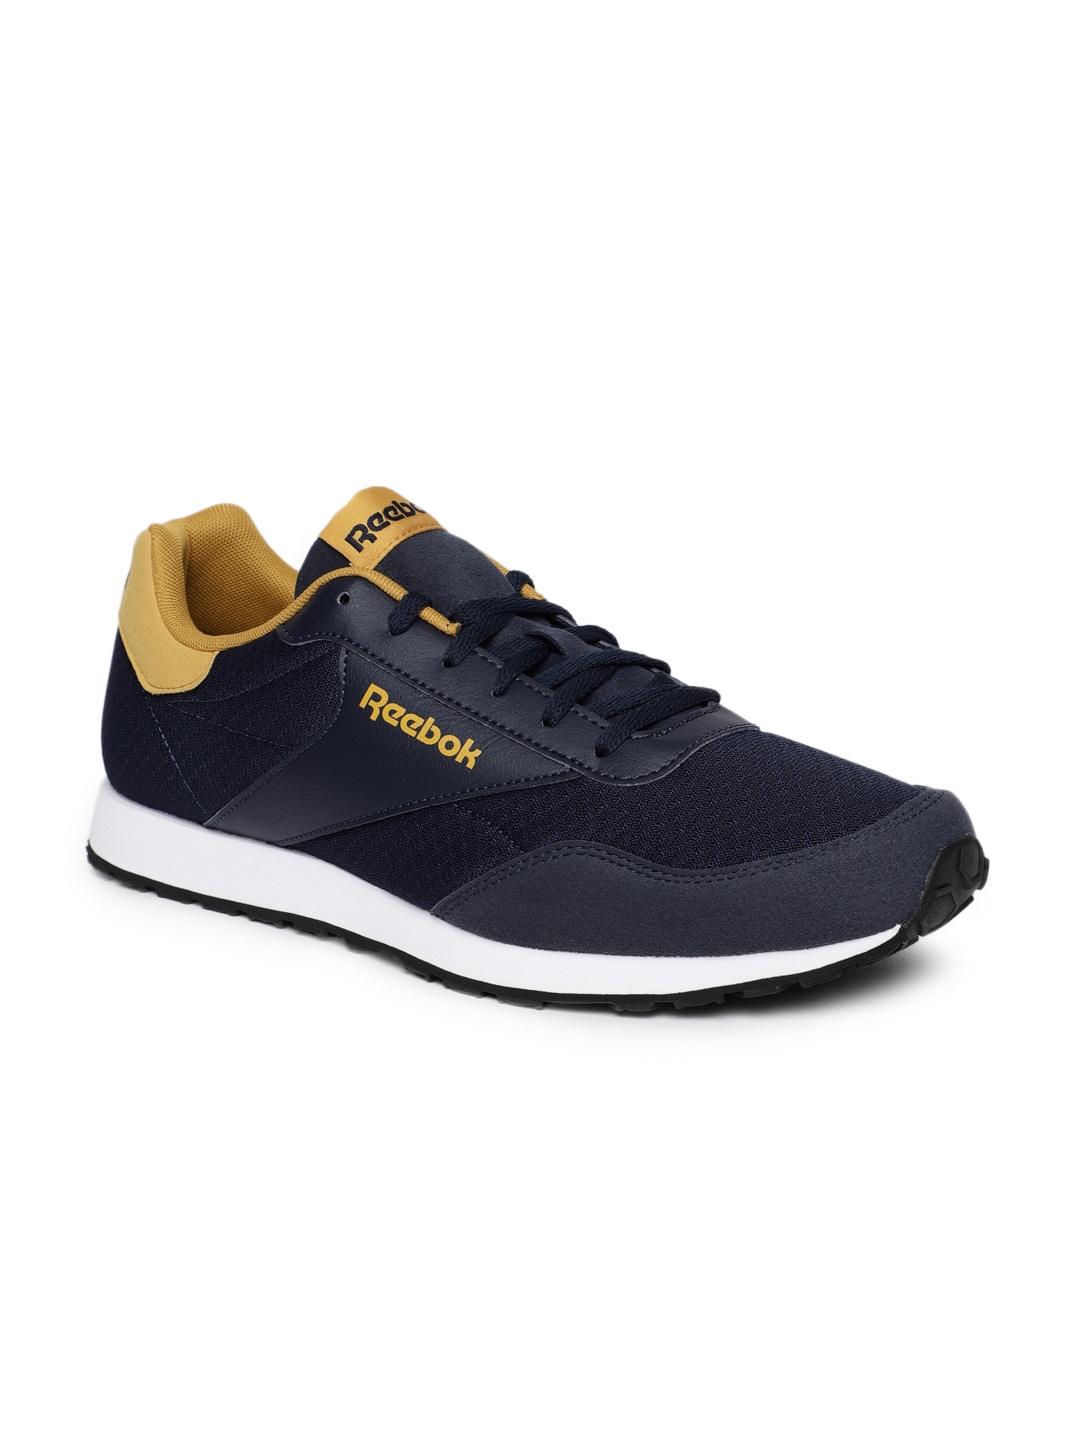 4670a439e63 Reebok Blazer Casual Shoes - Buy Reebok Blazer Casual Shoes online in India